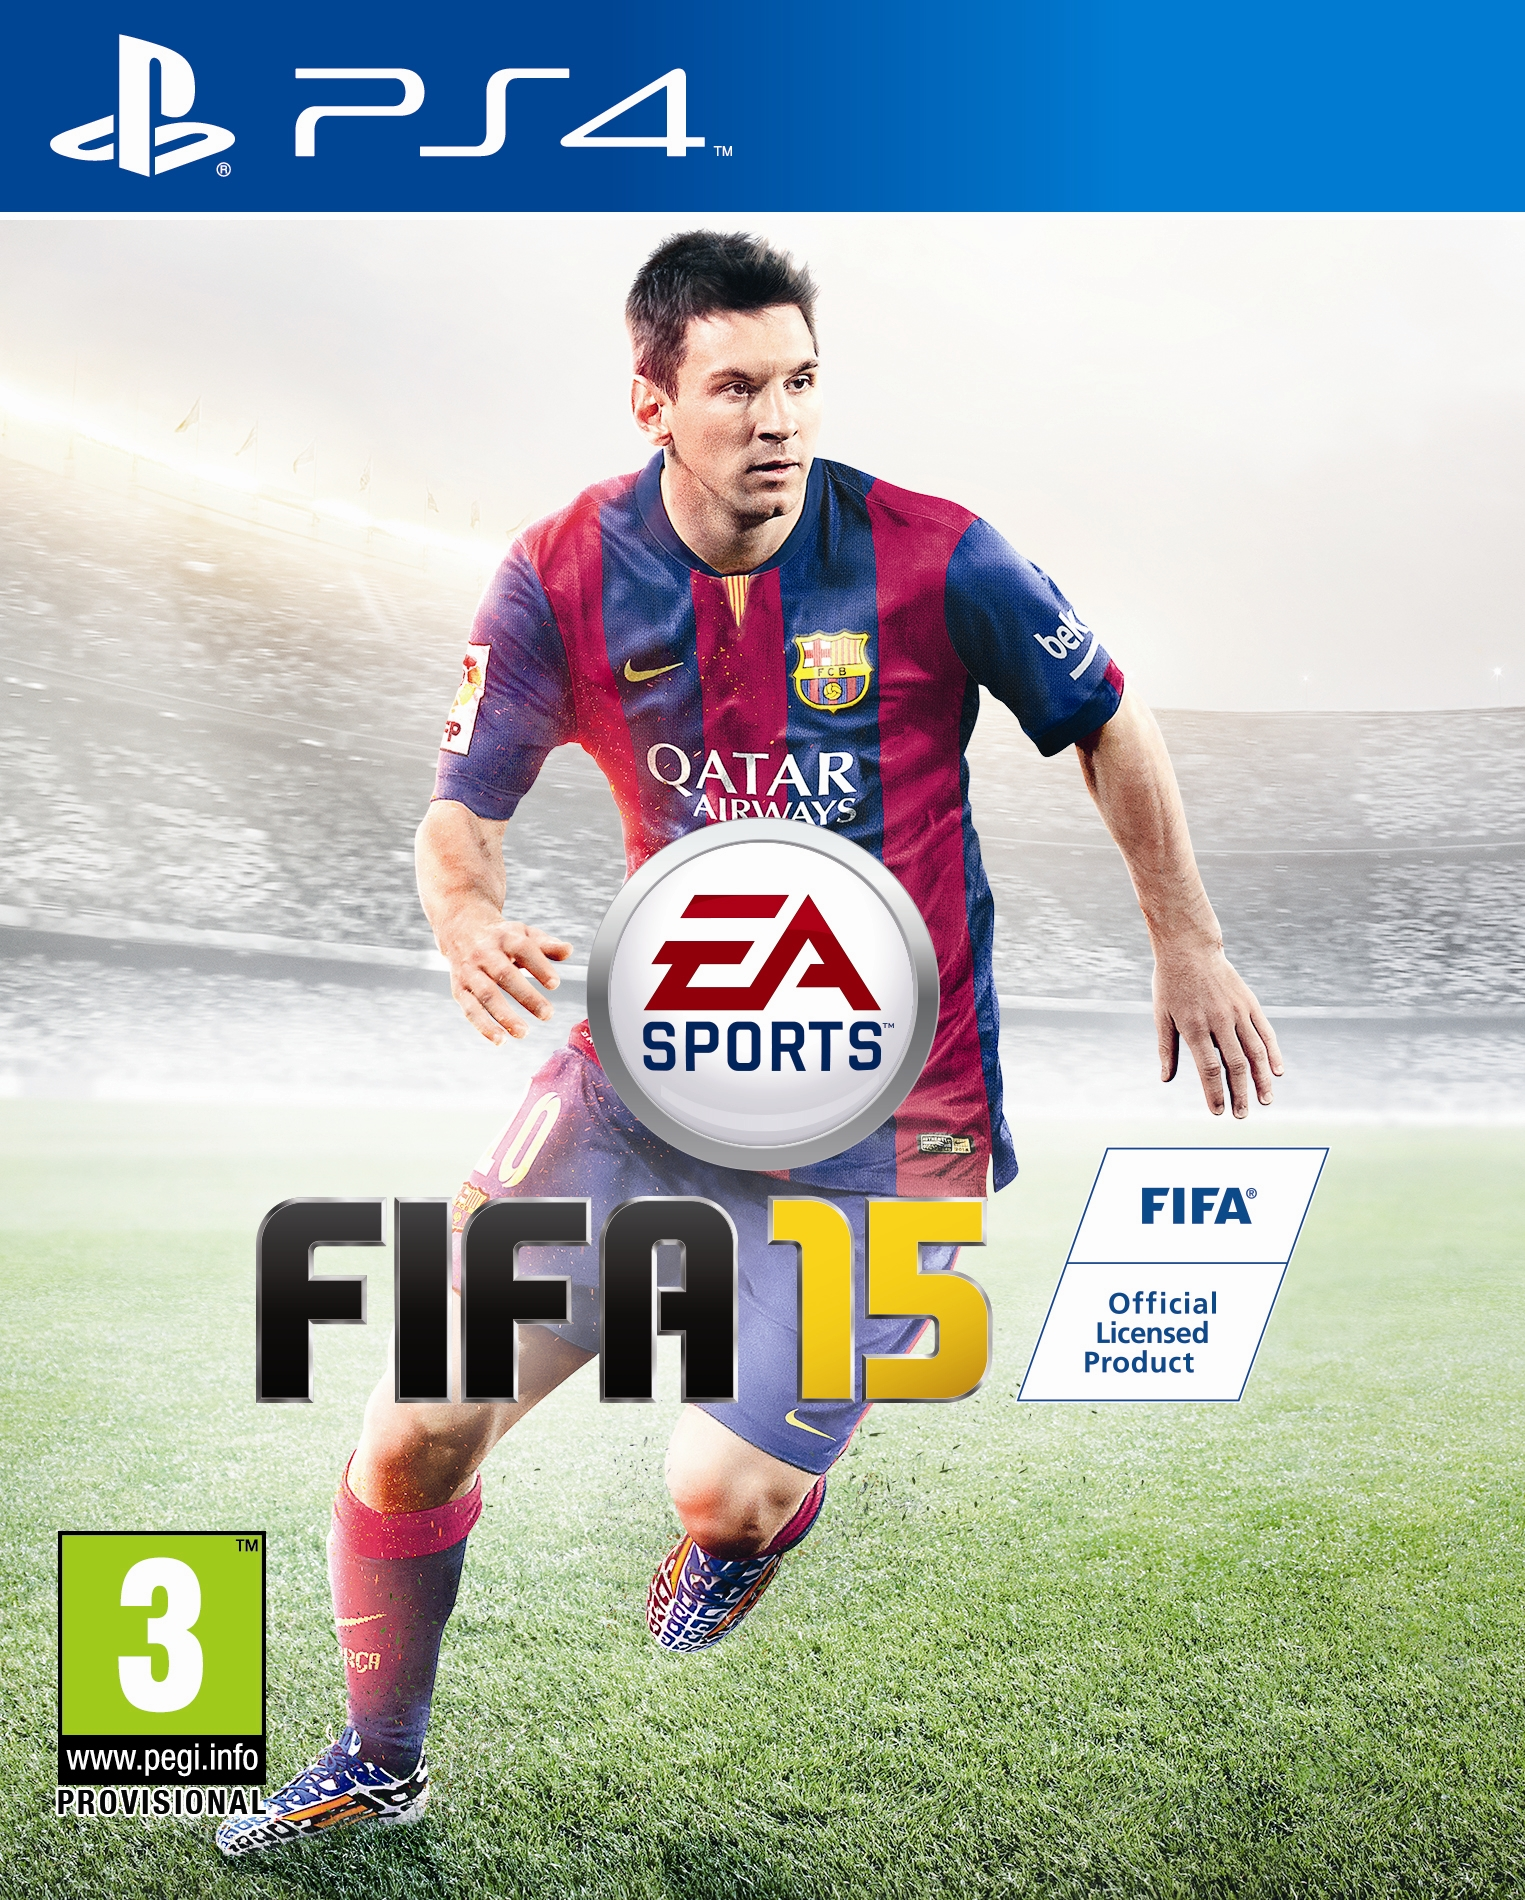 Sports Games For Ps3 : Playstation news fifa xbox art reveal and release